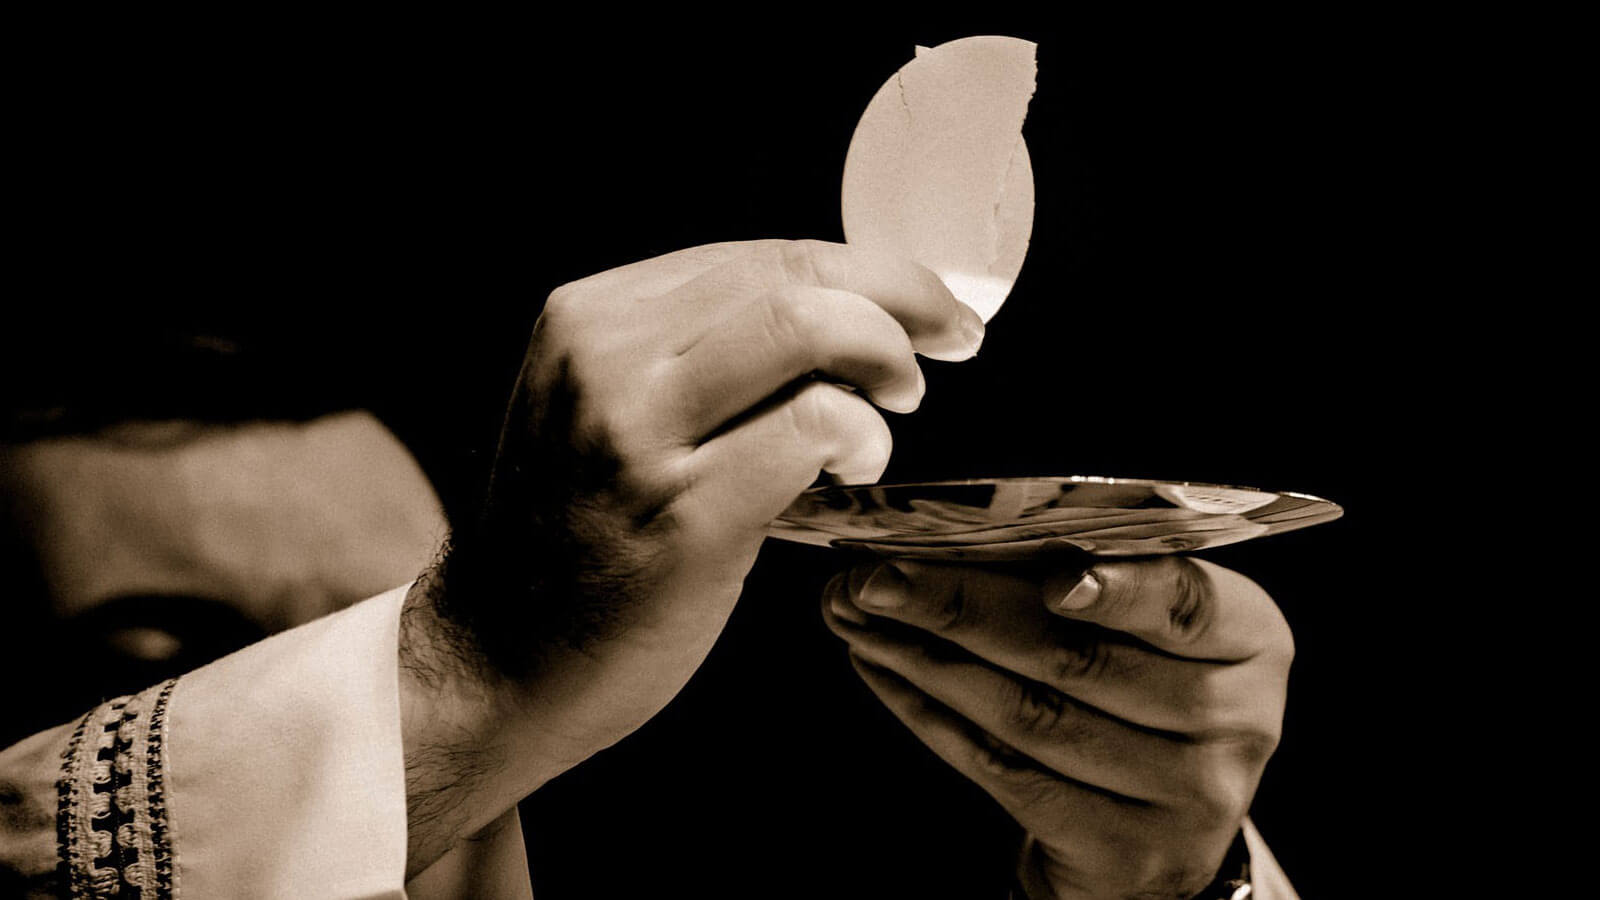 Sacrament of Holy Eucharist